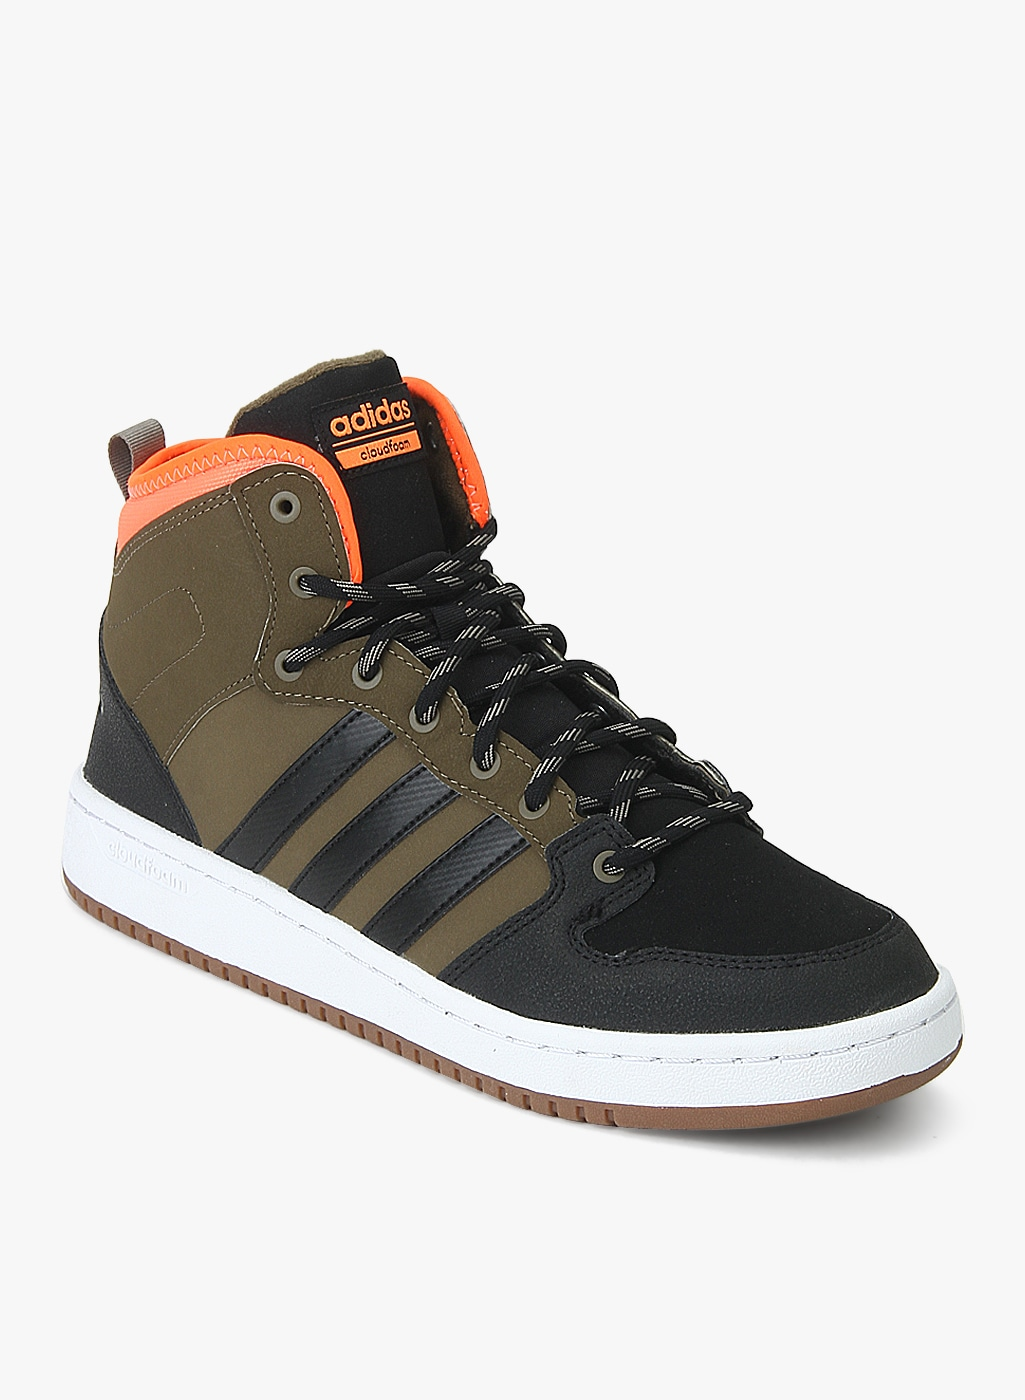 Adidas Neo Shoes - Buy Adidas Neo Shoes online in India e1587a0697d4